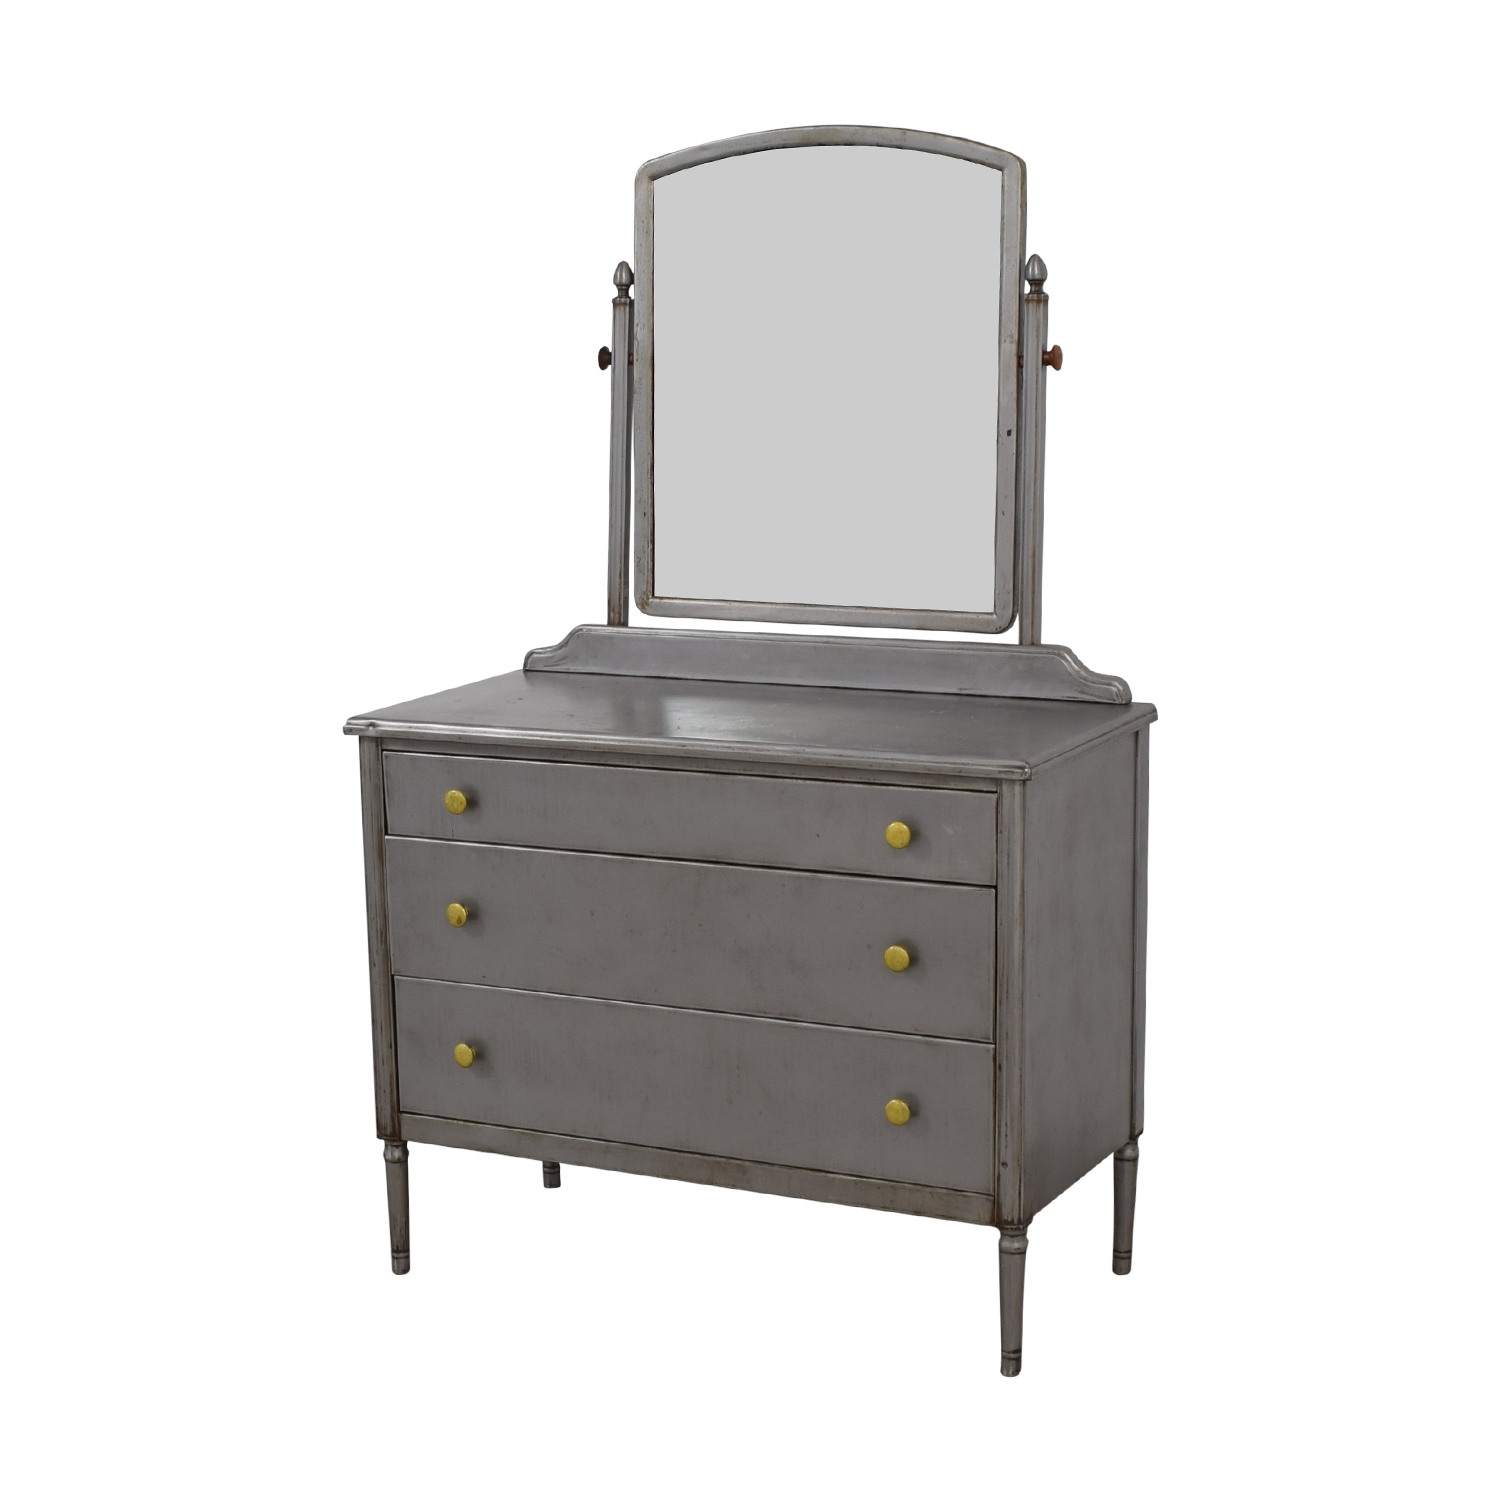 Simmons Antique Refinished Metal Dresser With Mirror